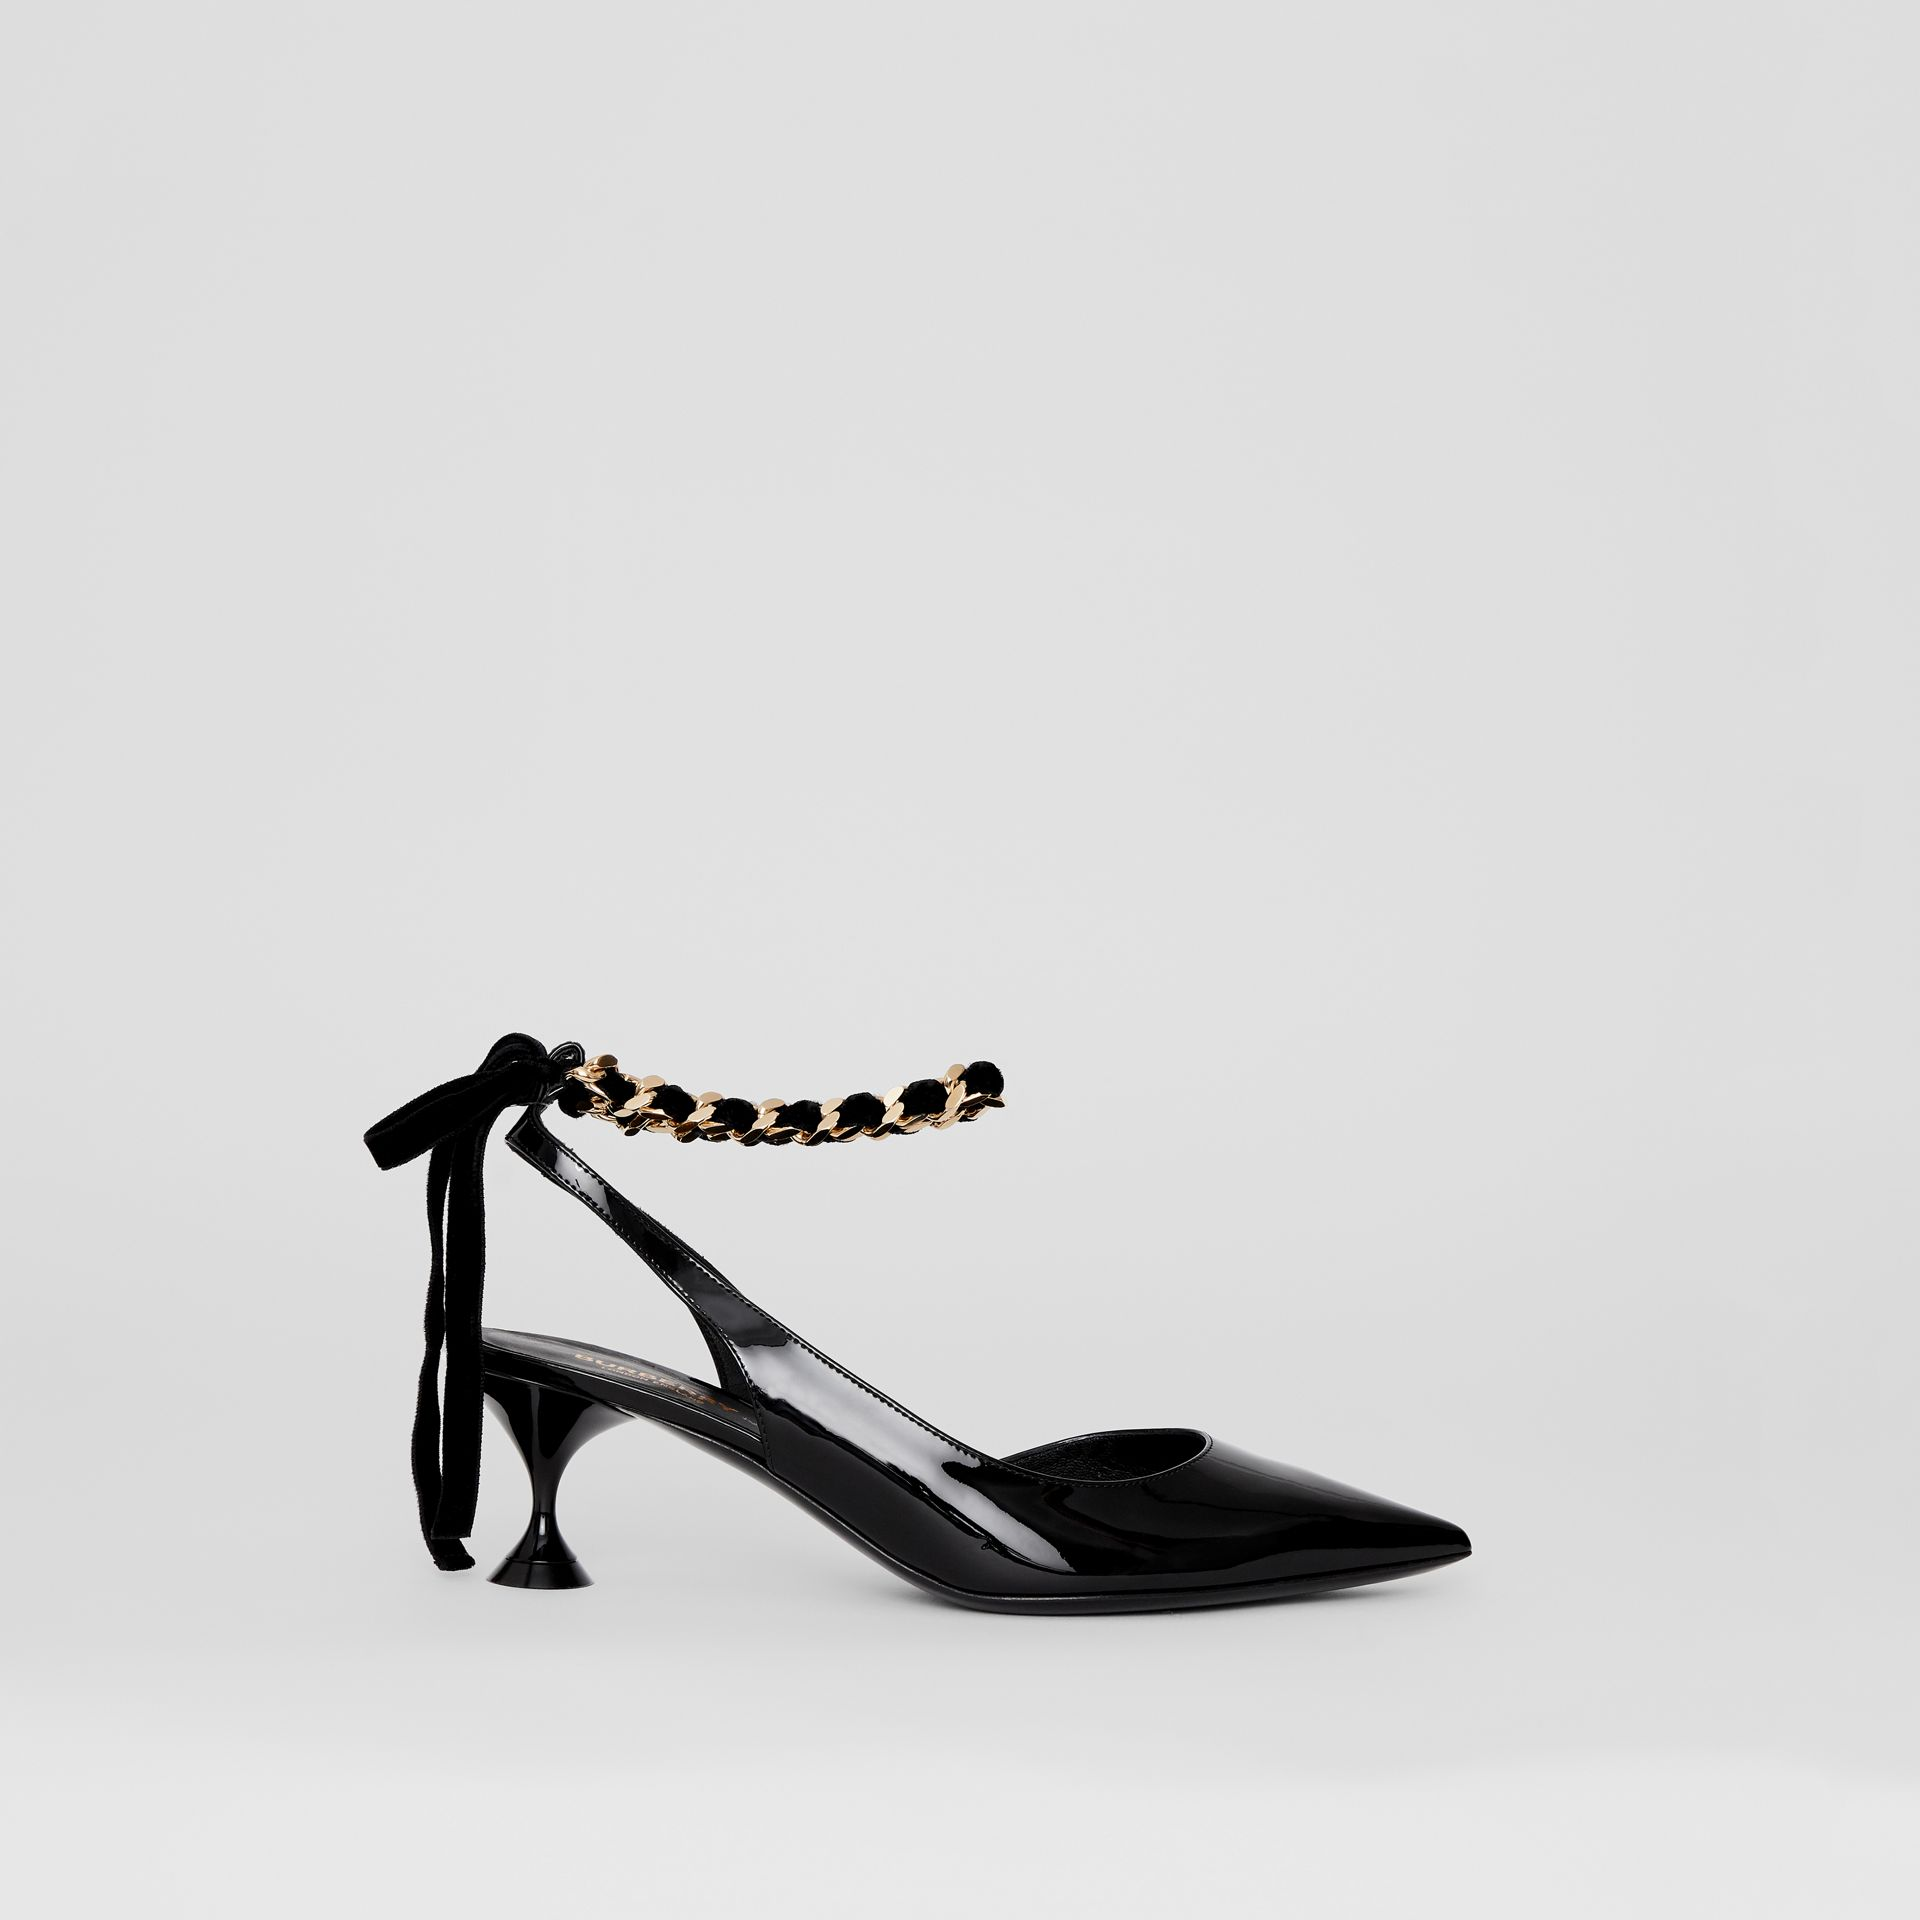 Chain Detail Leather Slingback Pumps in Black - Women | Burberry - gallery image 5